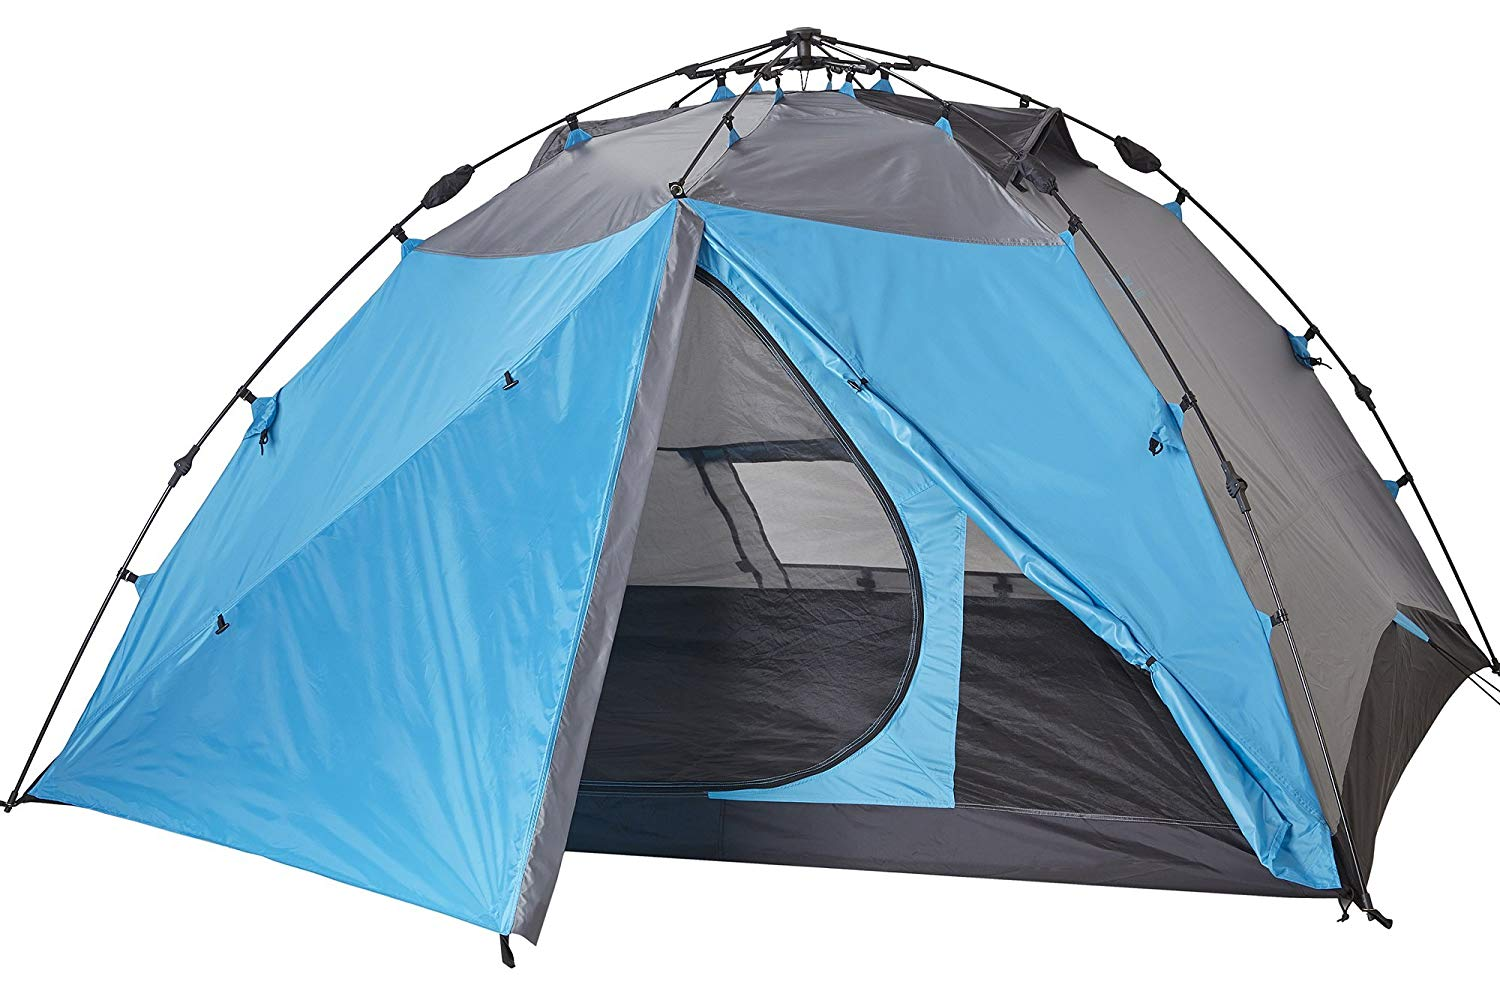 LightSpeed Outdoors Mammoth 4 Person Tent